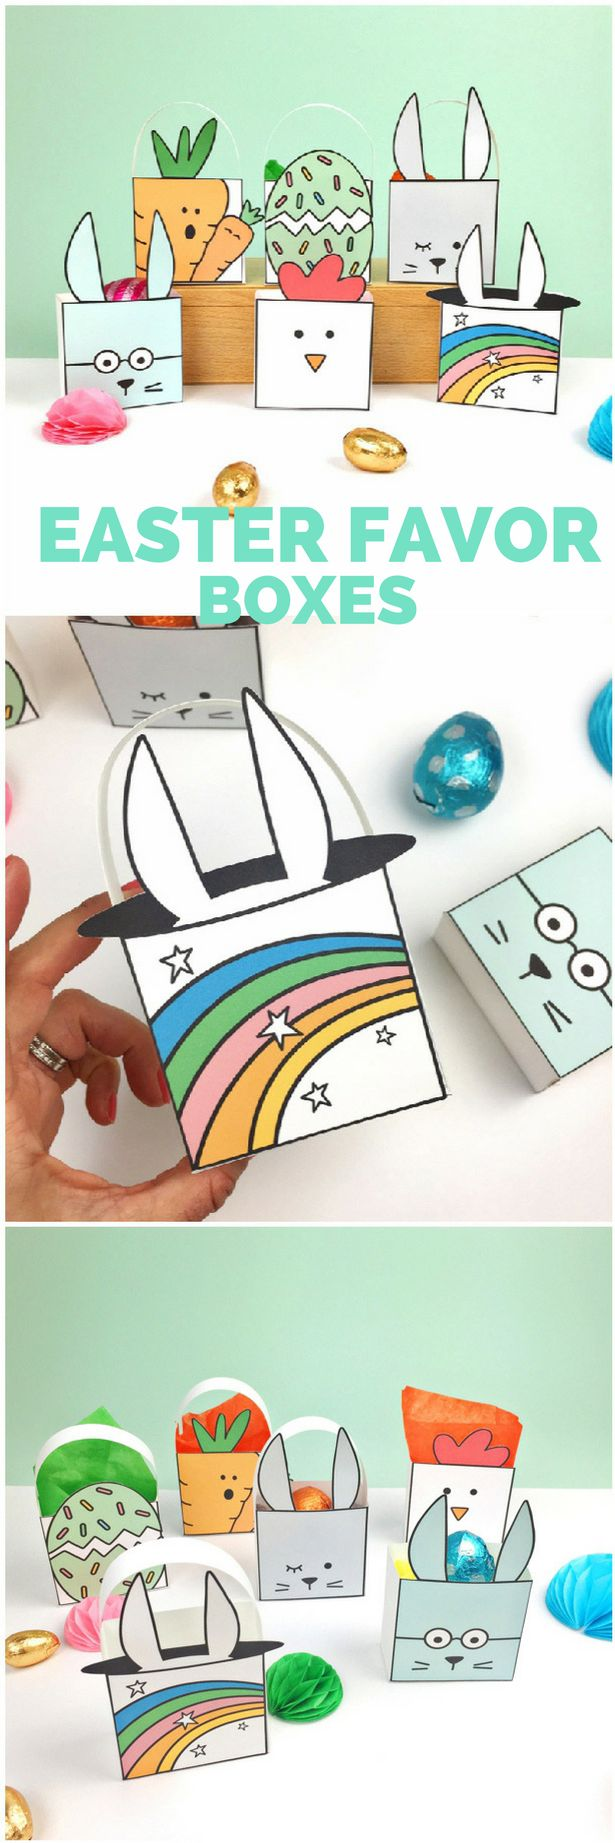 Cute Free Printable Easter Favor Boxes (6 designs, bunnies, chick, carrot, egg) with blank templates for coloring in options You can also use these as Easter Cards!